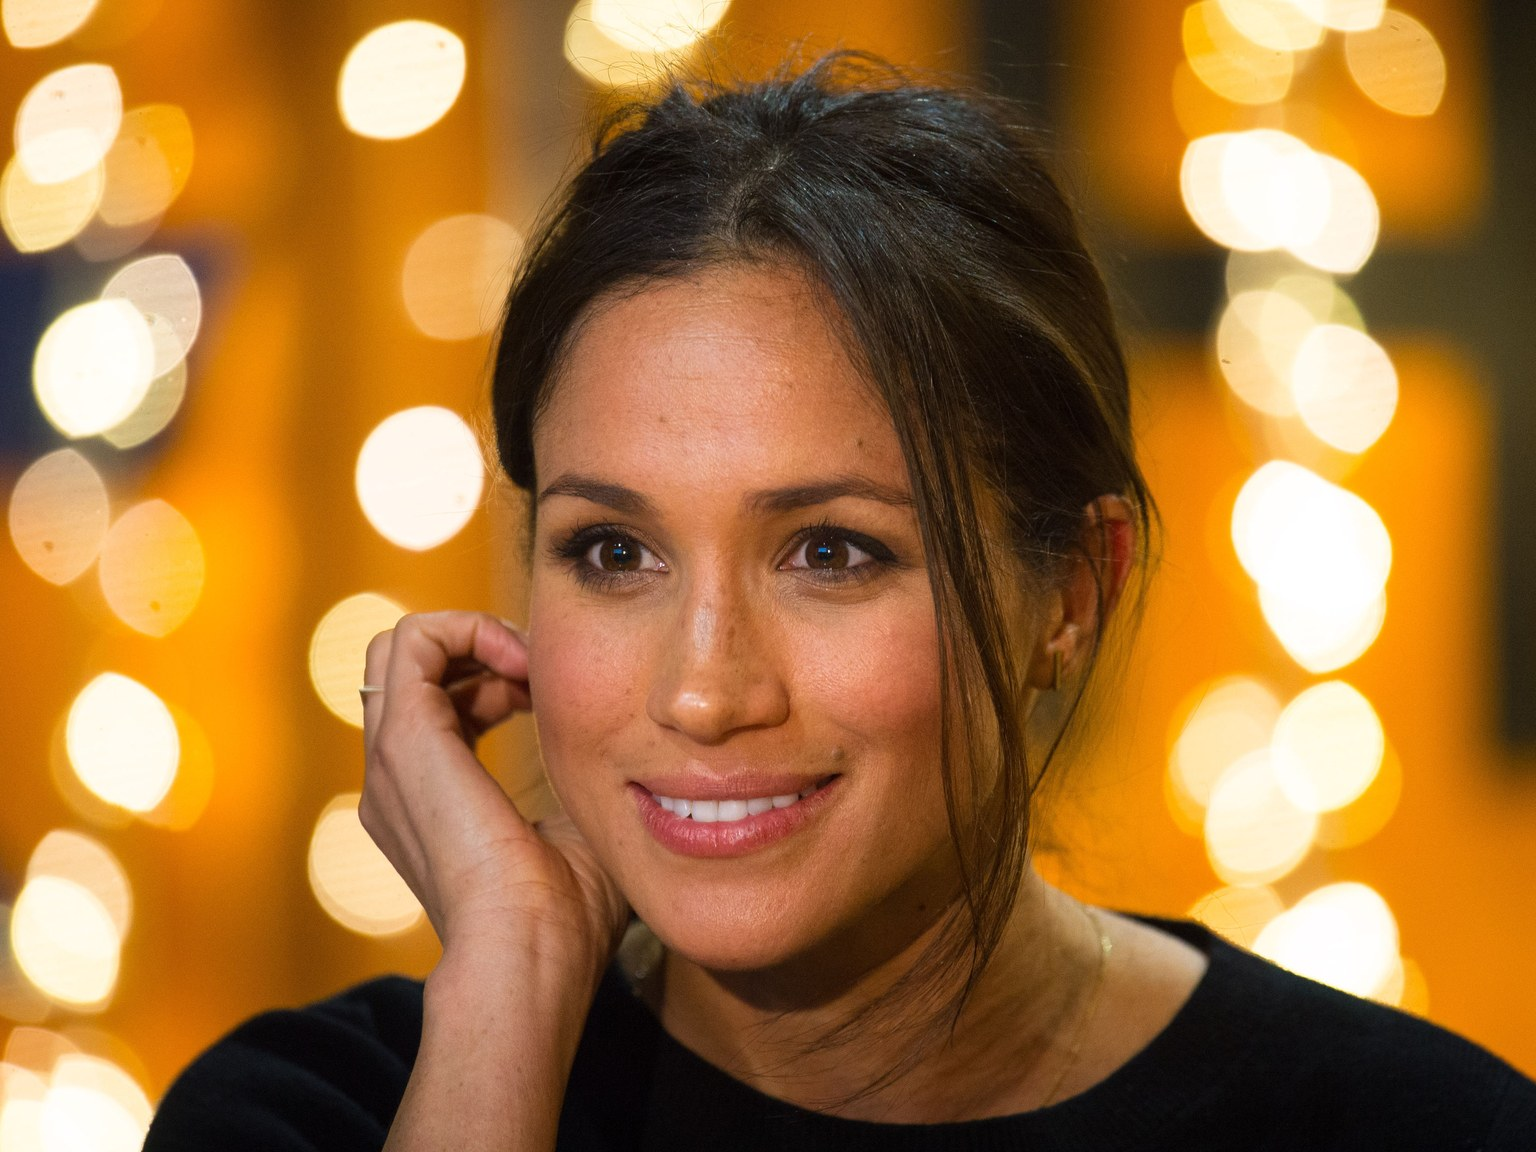 THE ONE ITEM MEGHAN MARKLE NEVER TRAVELS WITHOUT